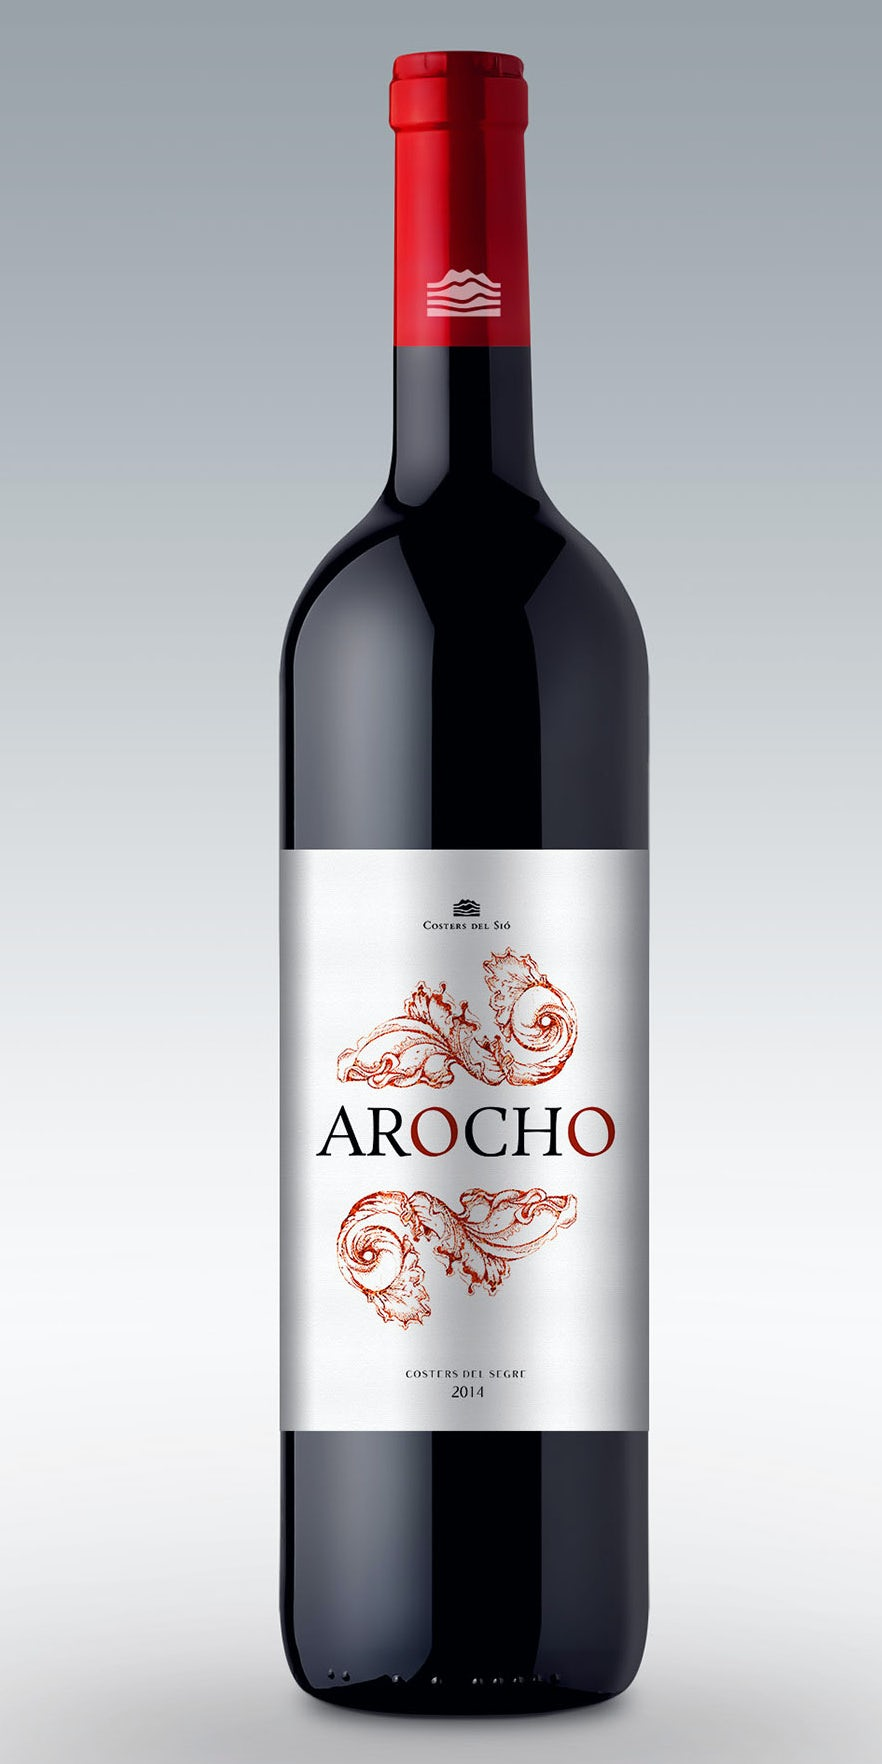 Bold and red traditional wine label